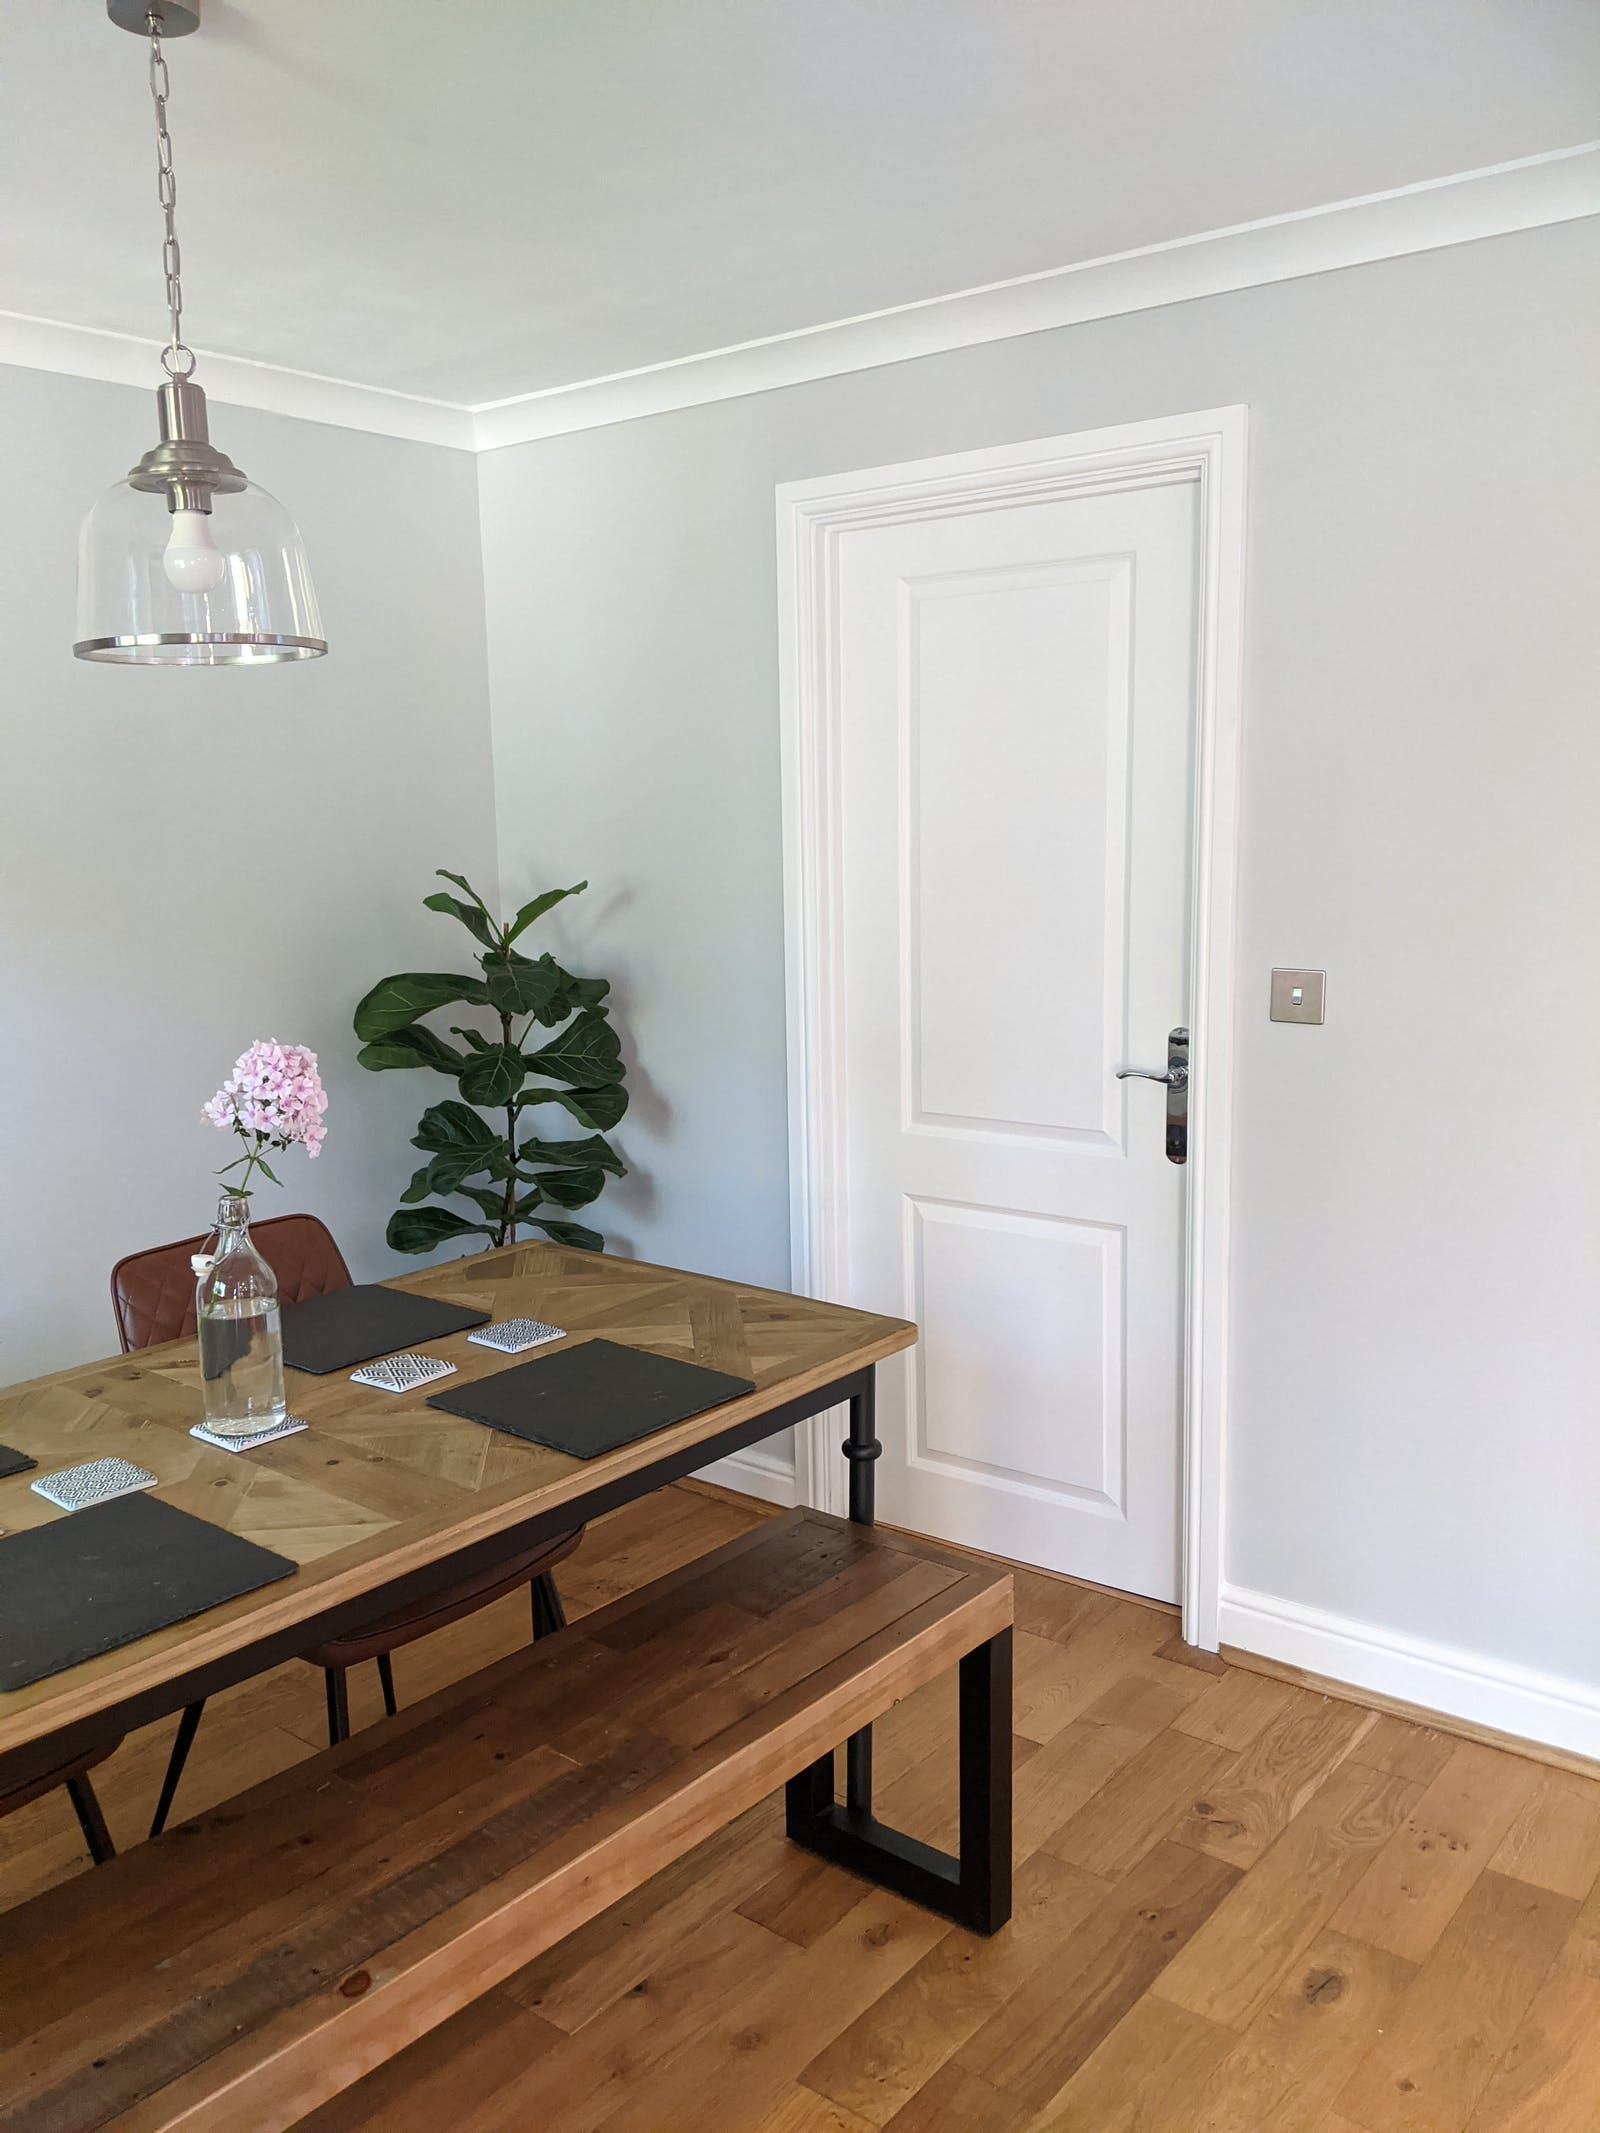 Dining room painted in Lick Grey 02, with a bench-style dining table and light pink flowers for decoration